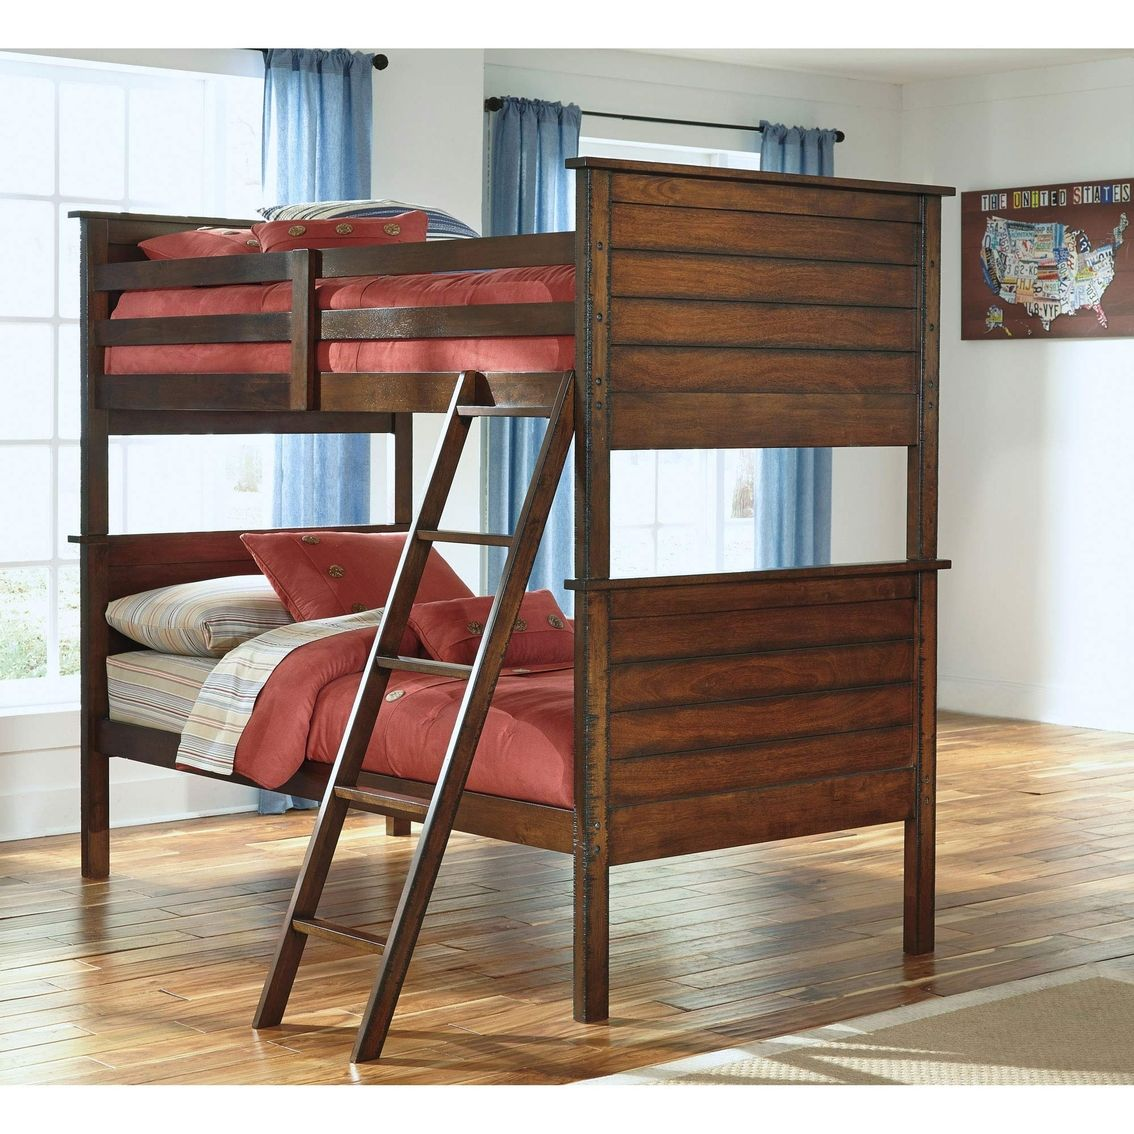 Pin by tiffany banks on home decor pinterest bunk bed and twins